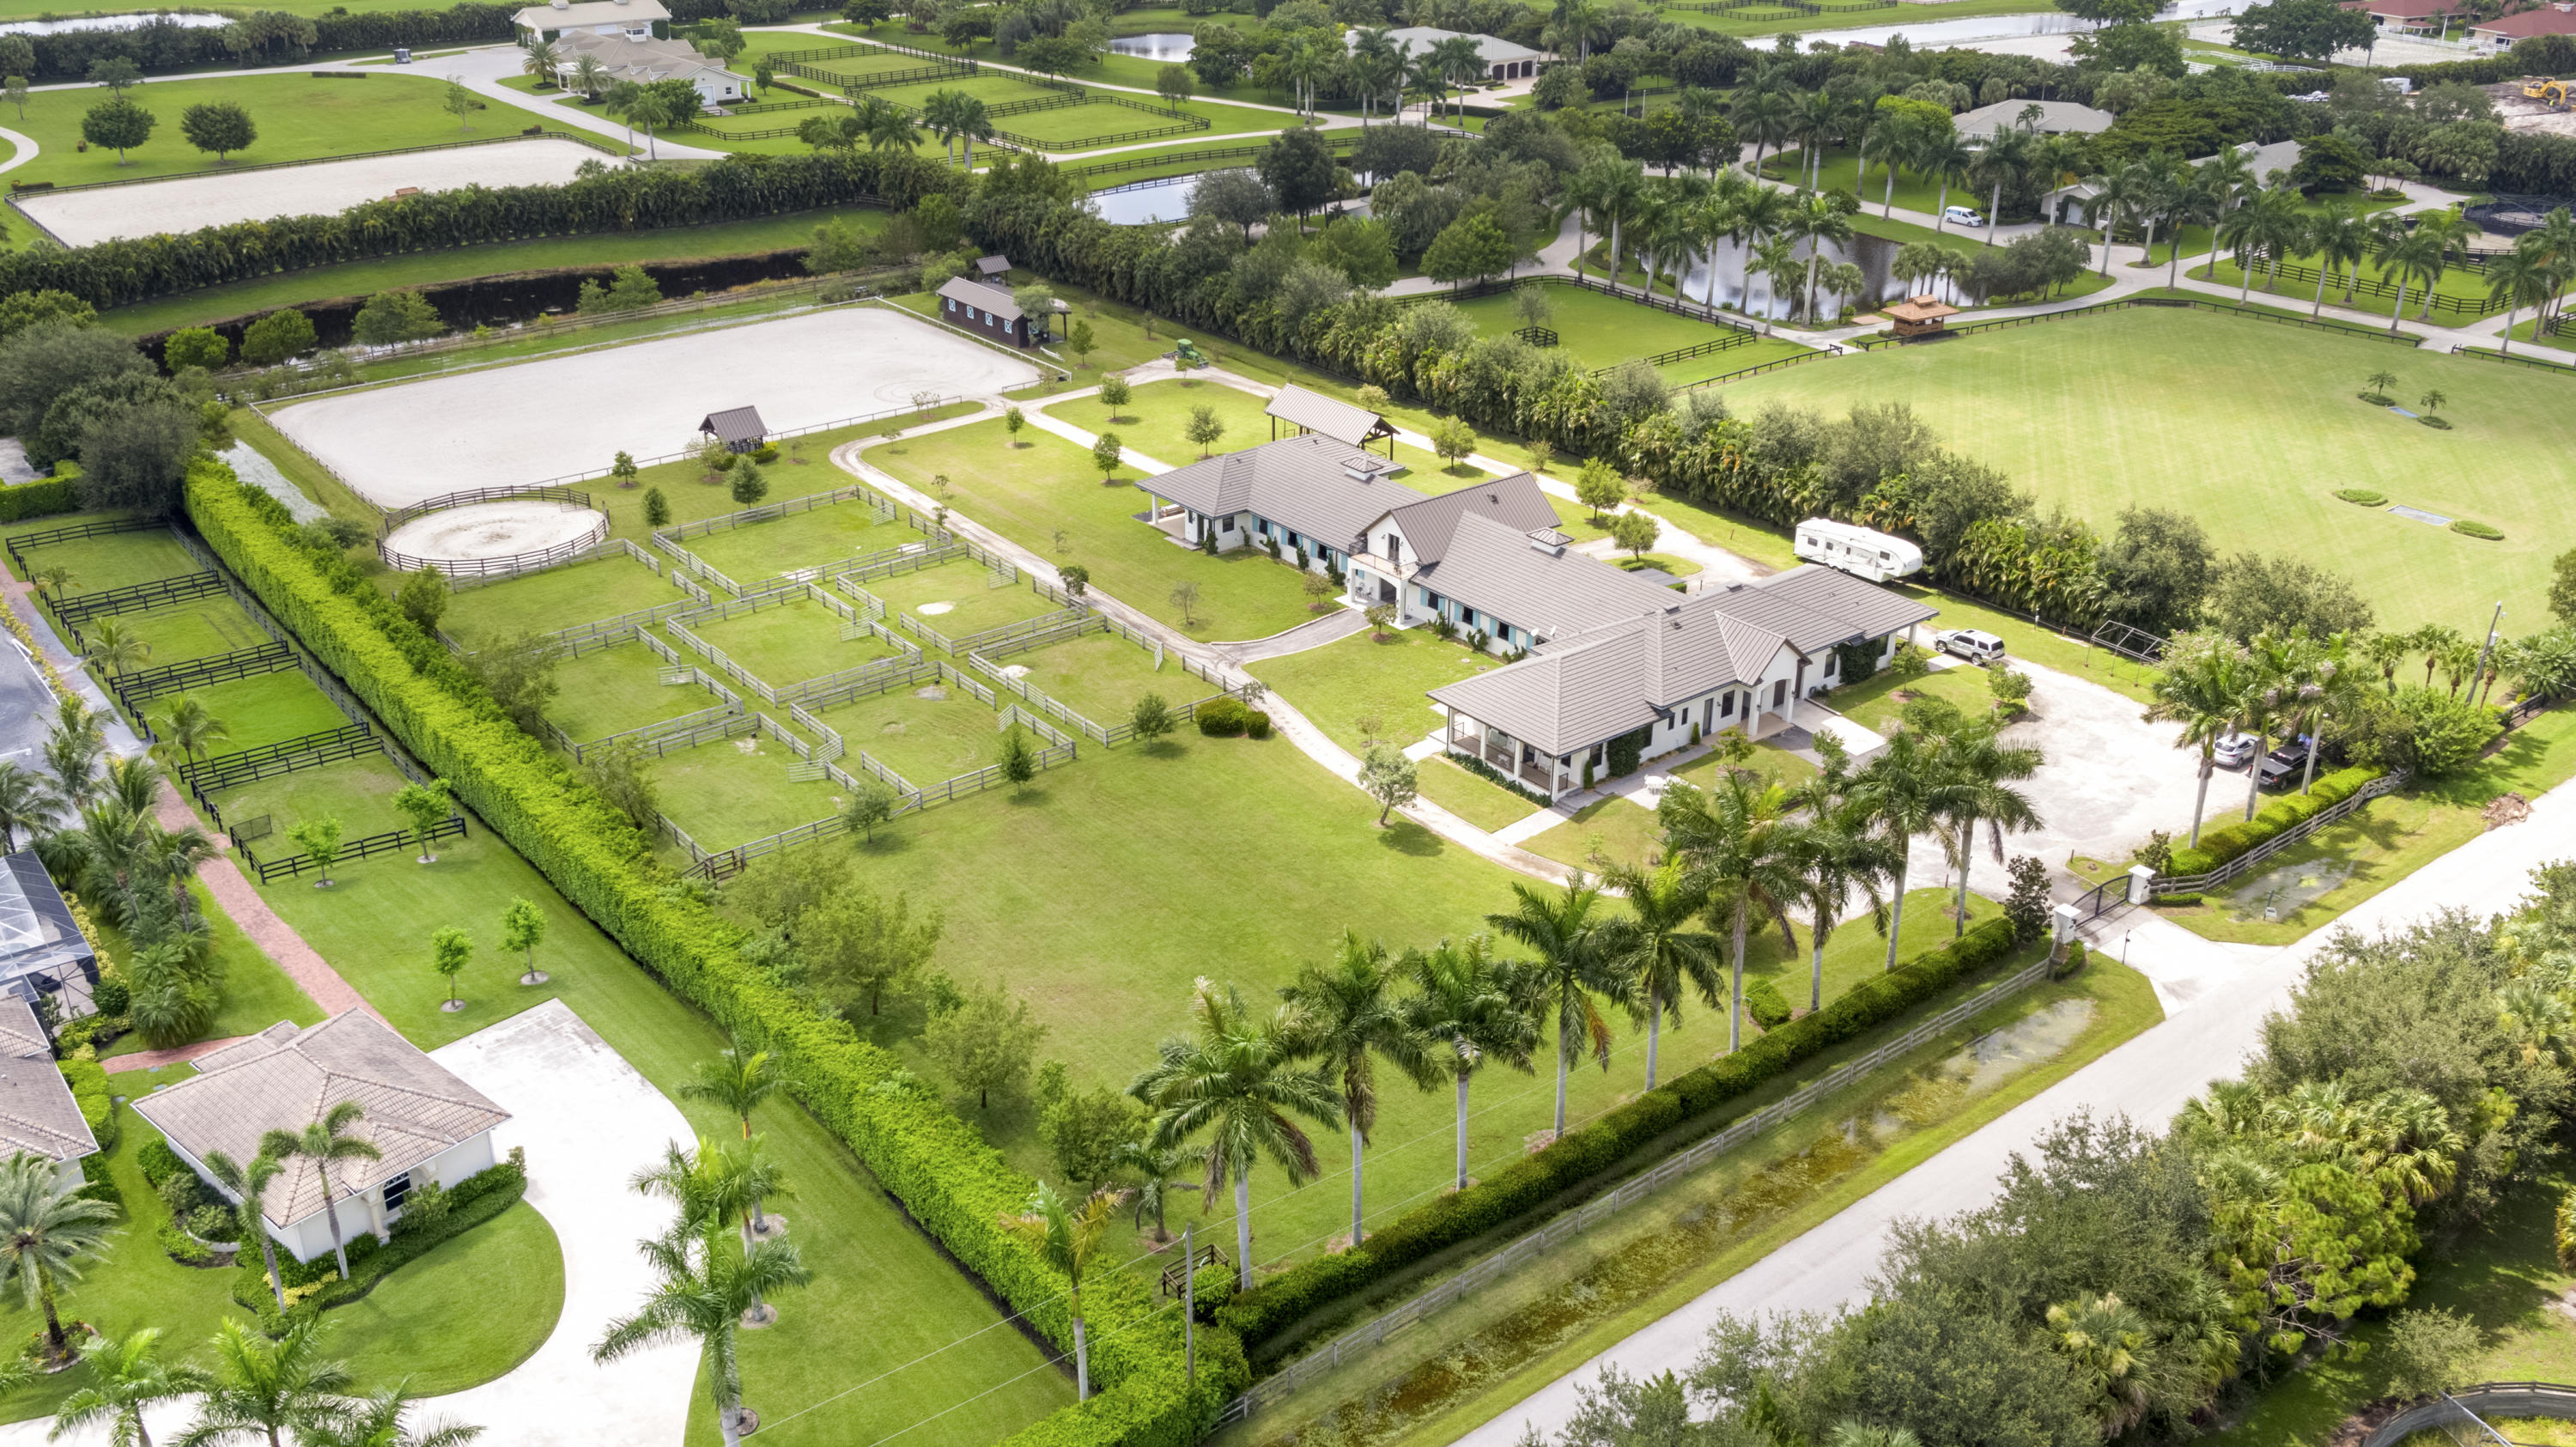 4915 Stables Way, Wellington, Florida 33414, 4 Bedrooms Bedrooms, ,5 BathroomsBathrooms,Barn,For Rent,Stables,1,RX-10643414